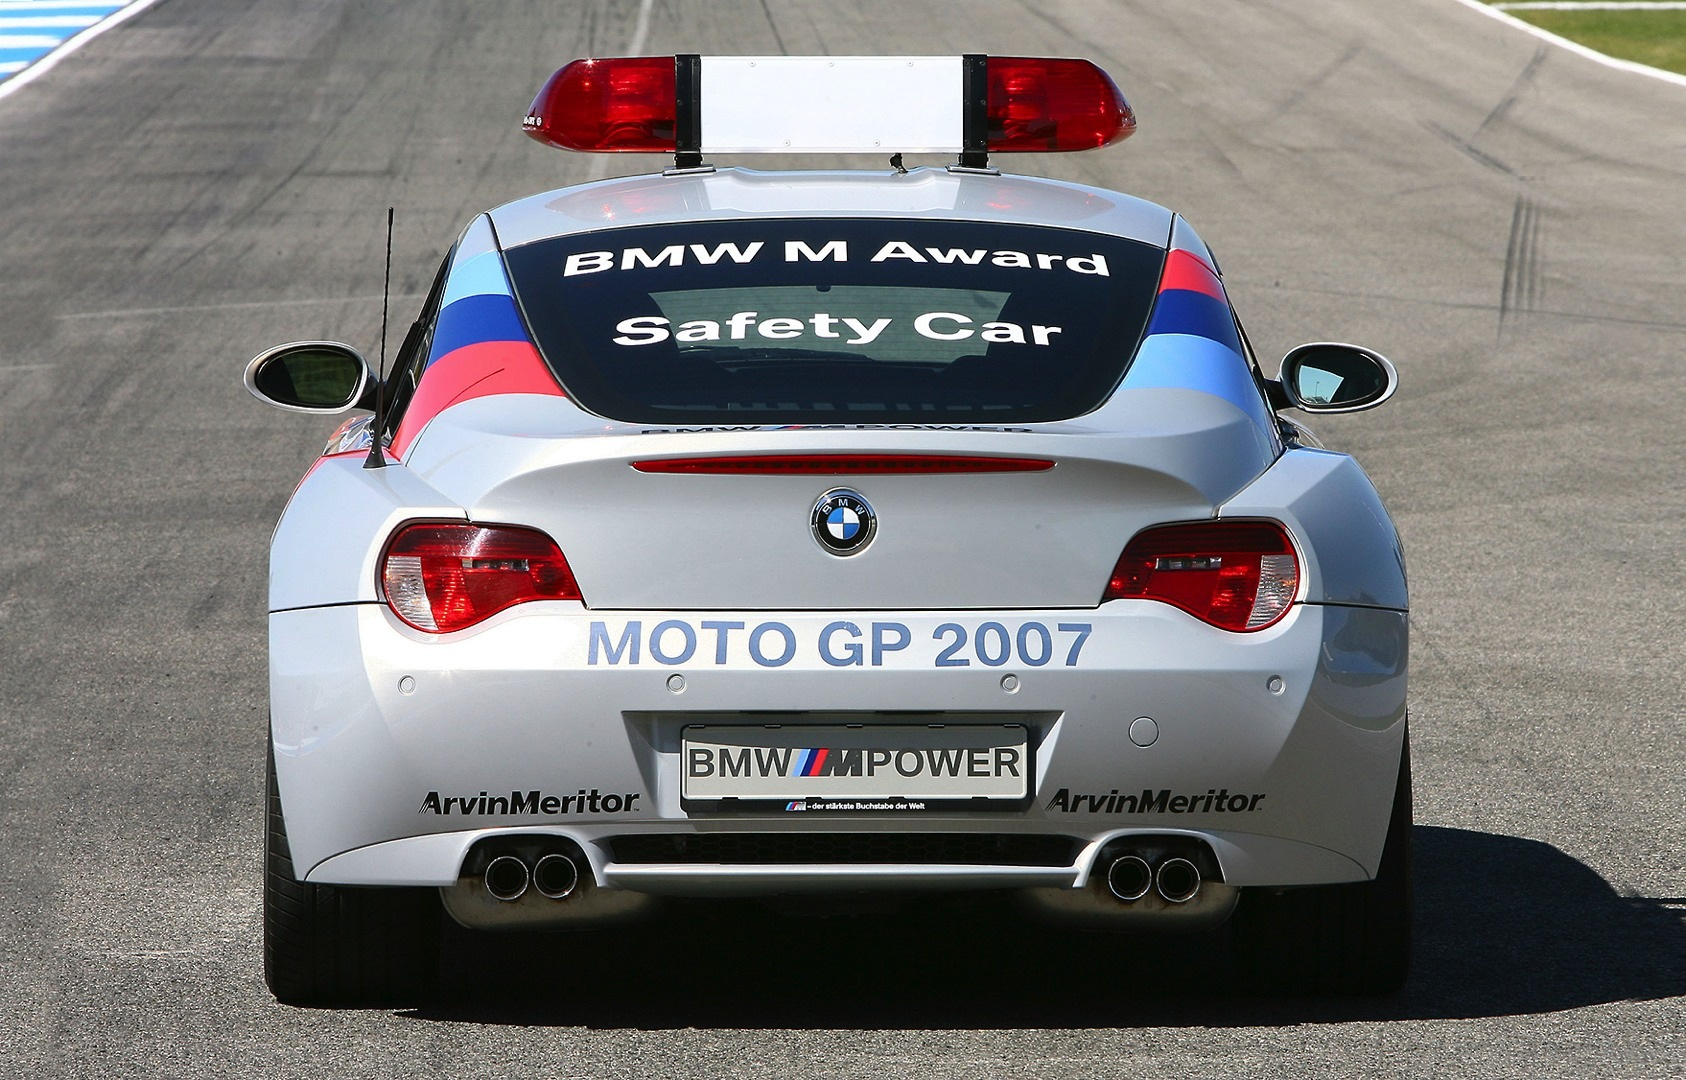 Bmw M4 Coupe Motogp Safety Car Details Revealed